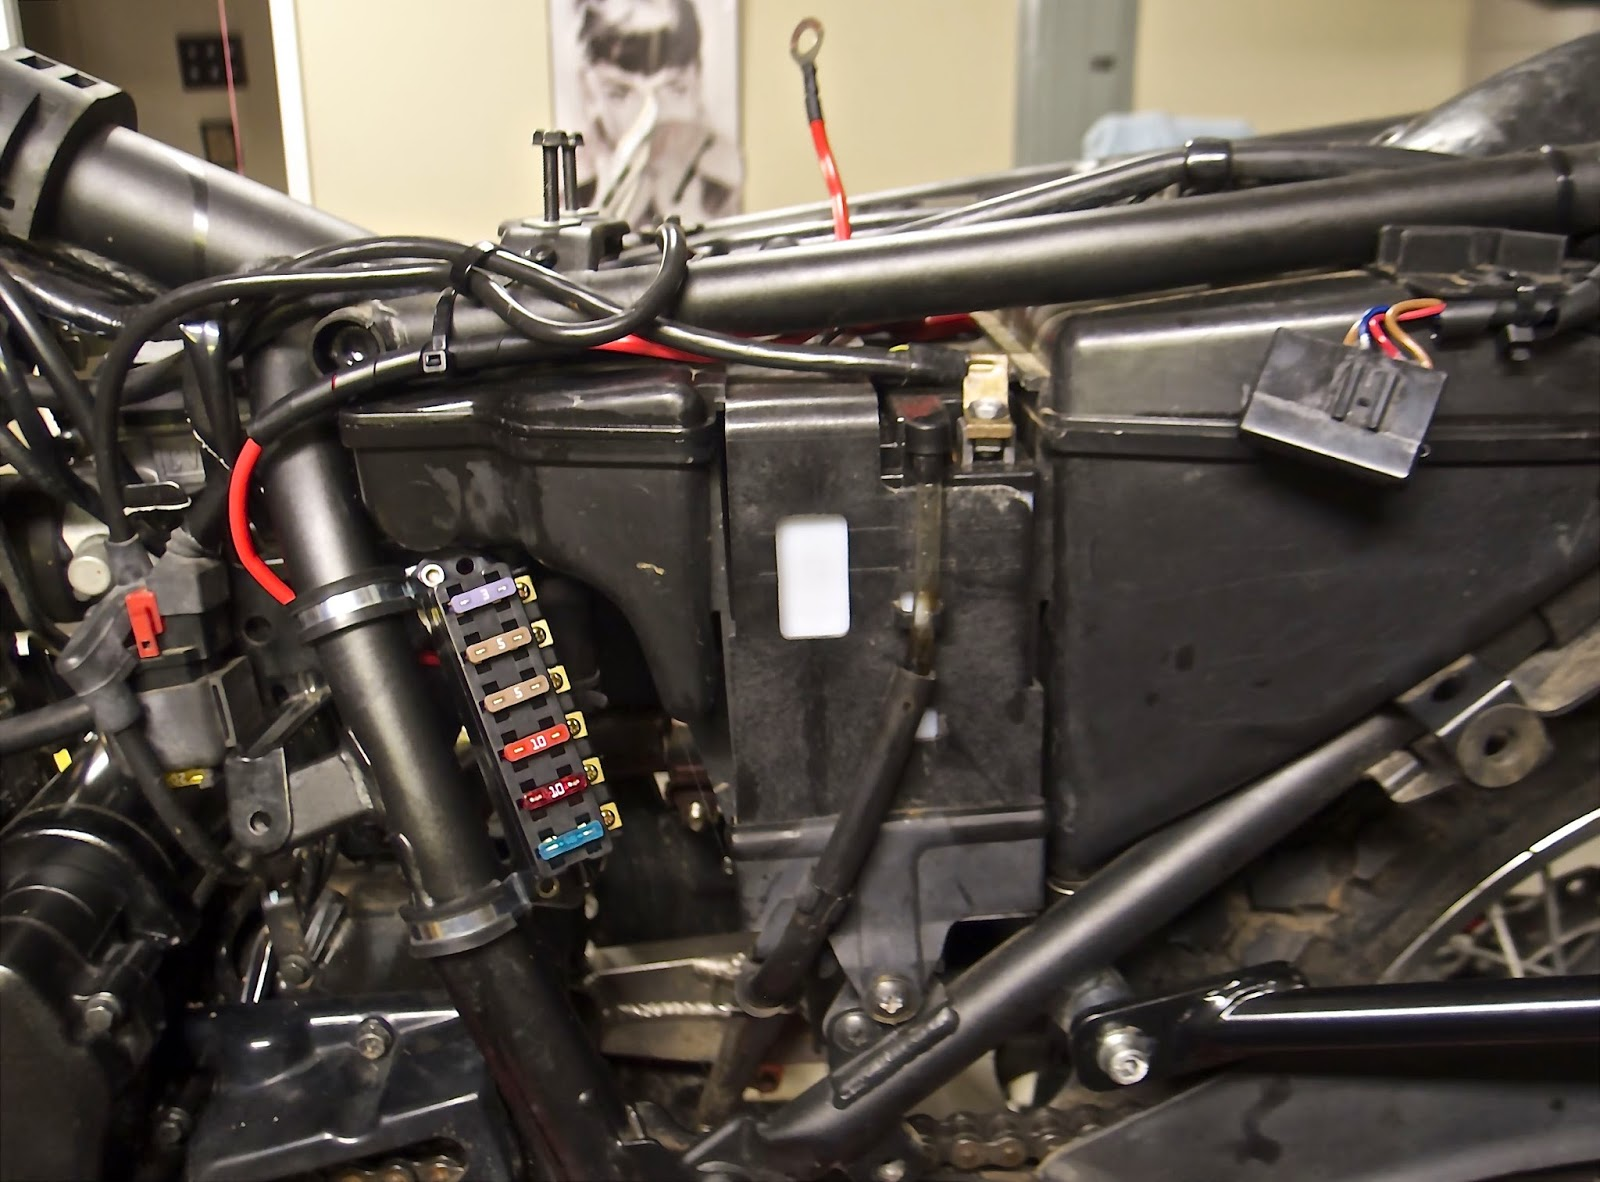 Riding The Horizon A little Wrenching – Klr 650 Fuse Box Location